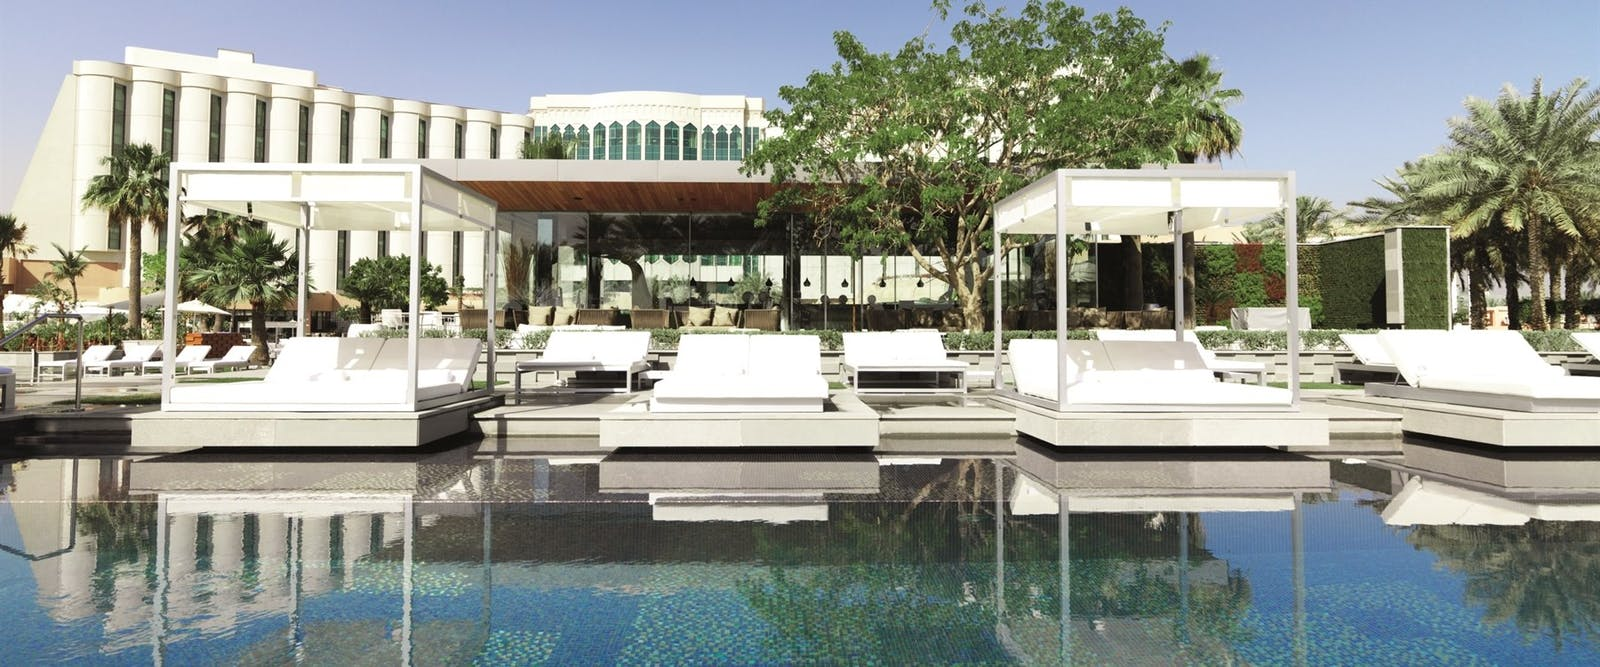 Infinity Pool at The Ritz Carlton Bahrain Hotel Villas and Spa